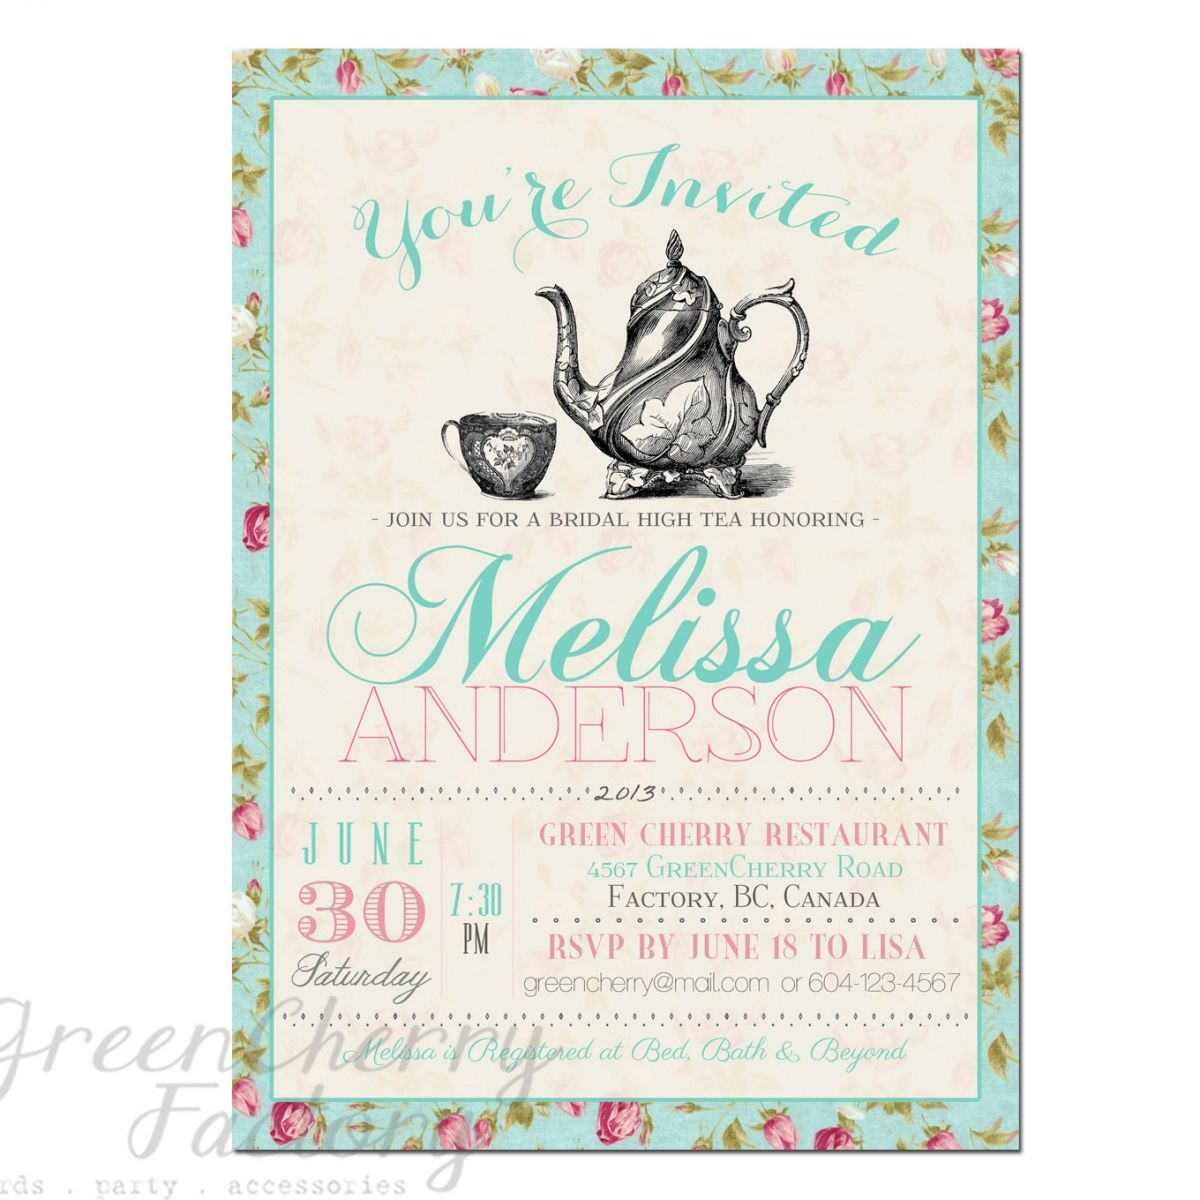 Tea Party Invitation Templates to Print | Free Printable Tea Party Invitations Templates